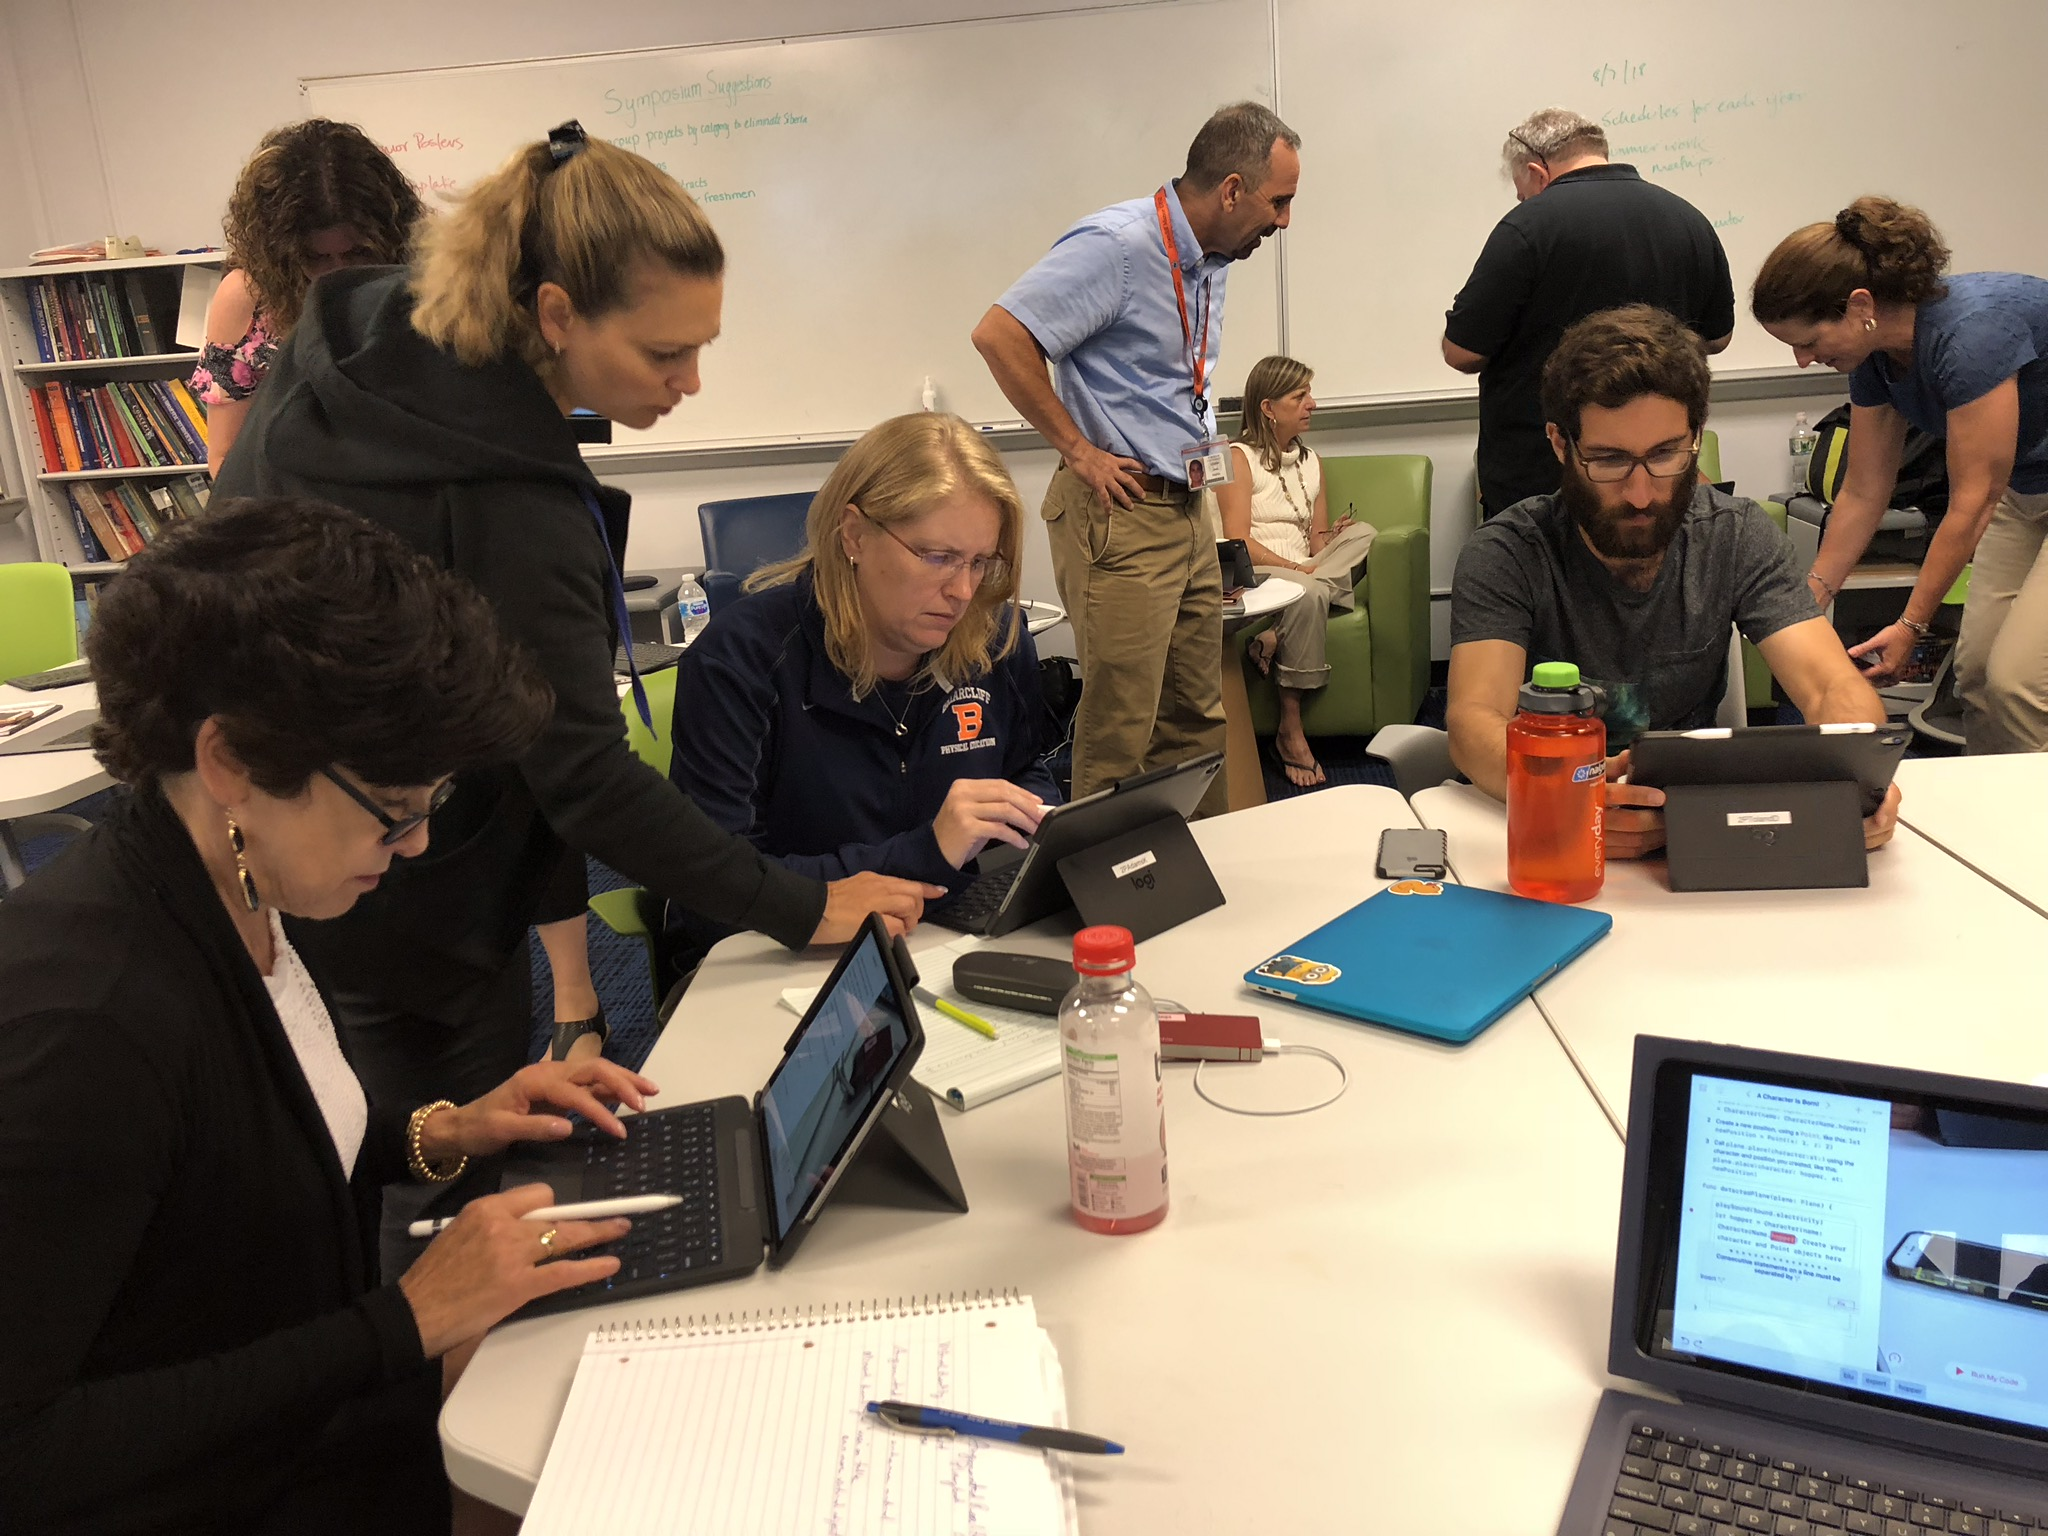 Briarcliff teachers are learning to code, too - Colleen Wilson - lohud. Article